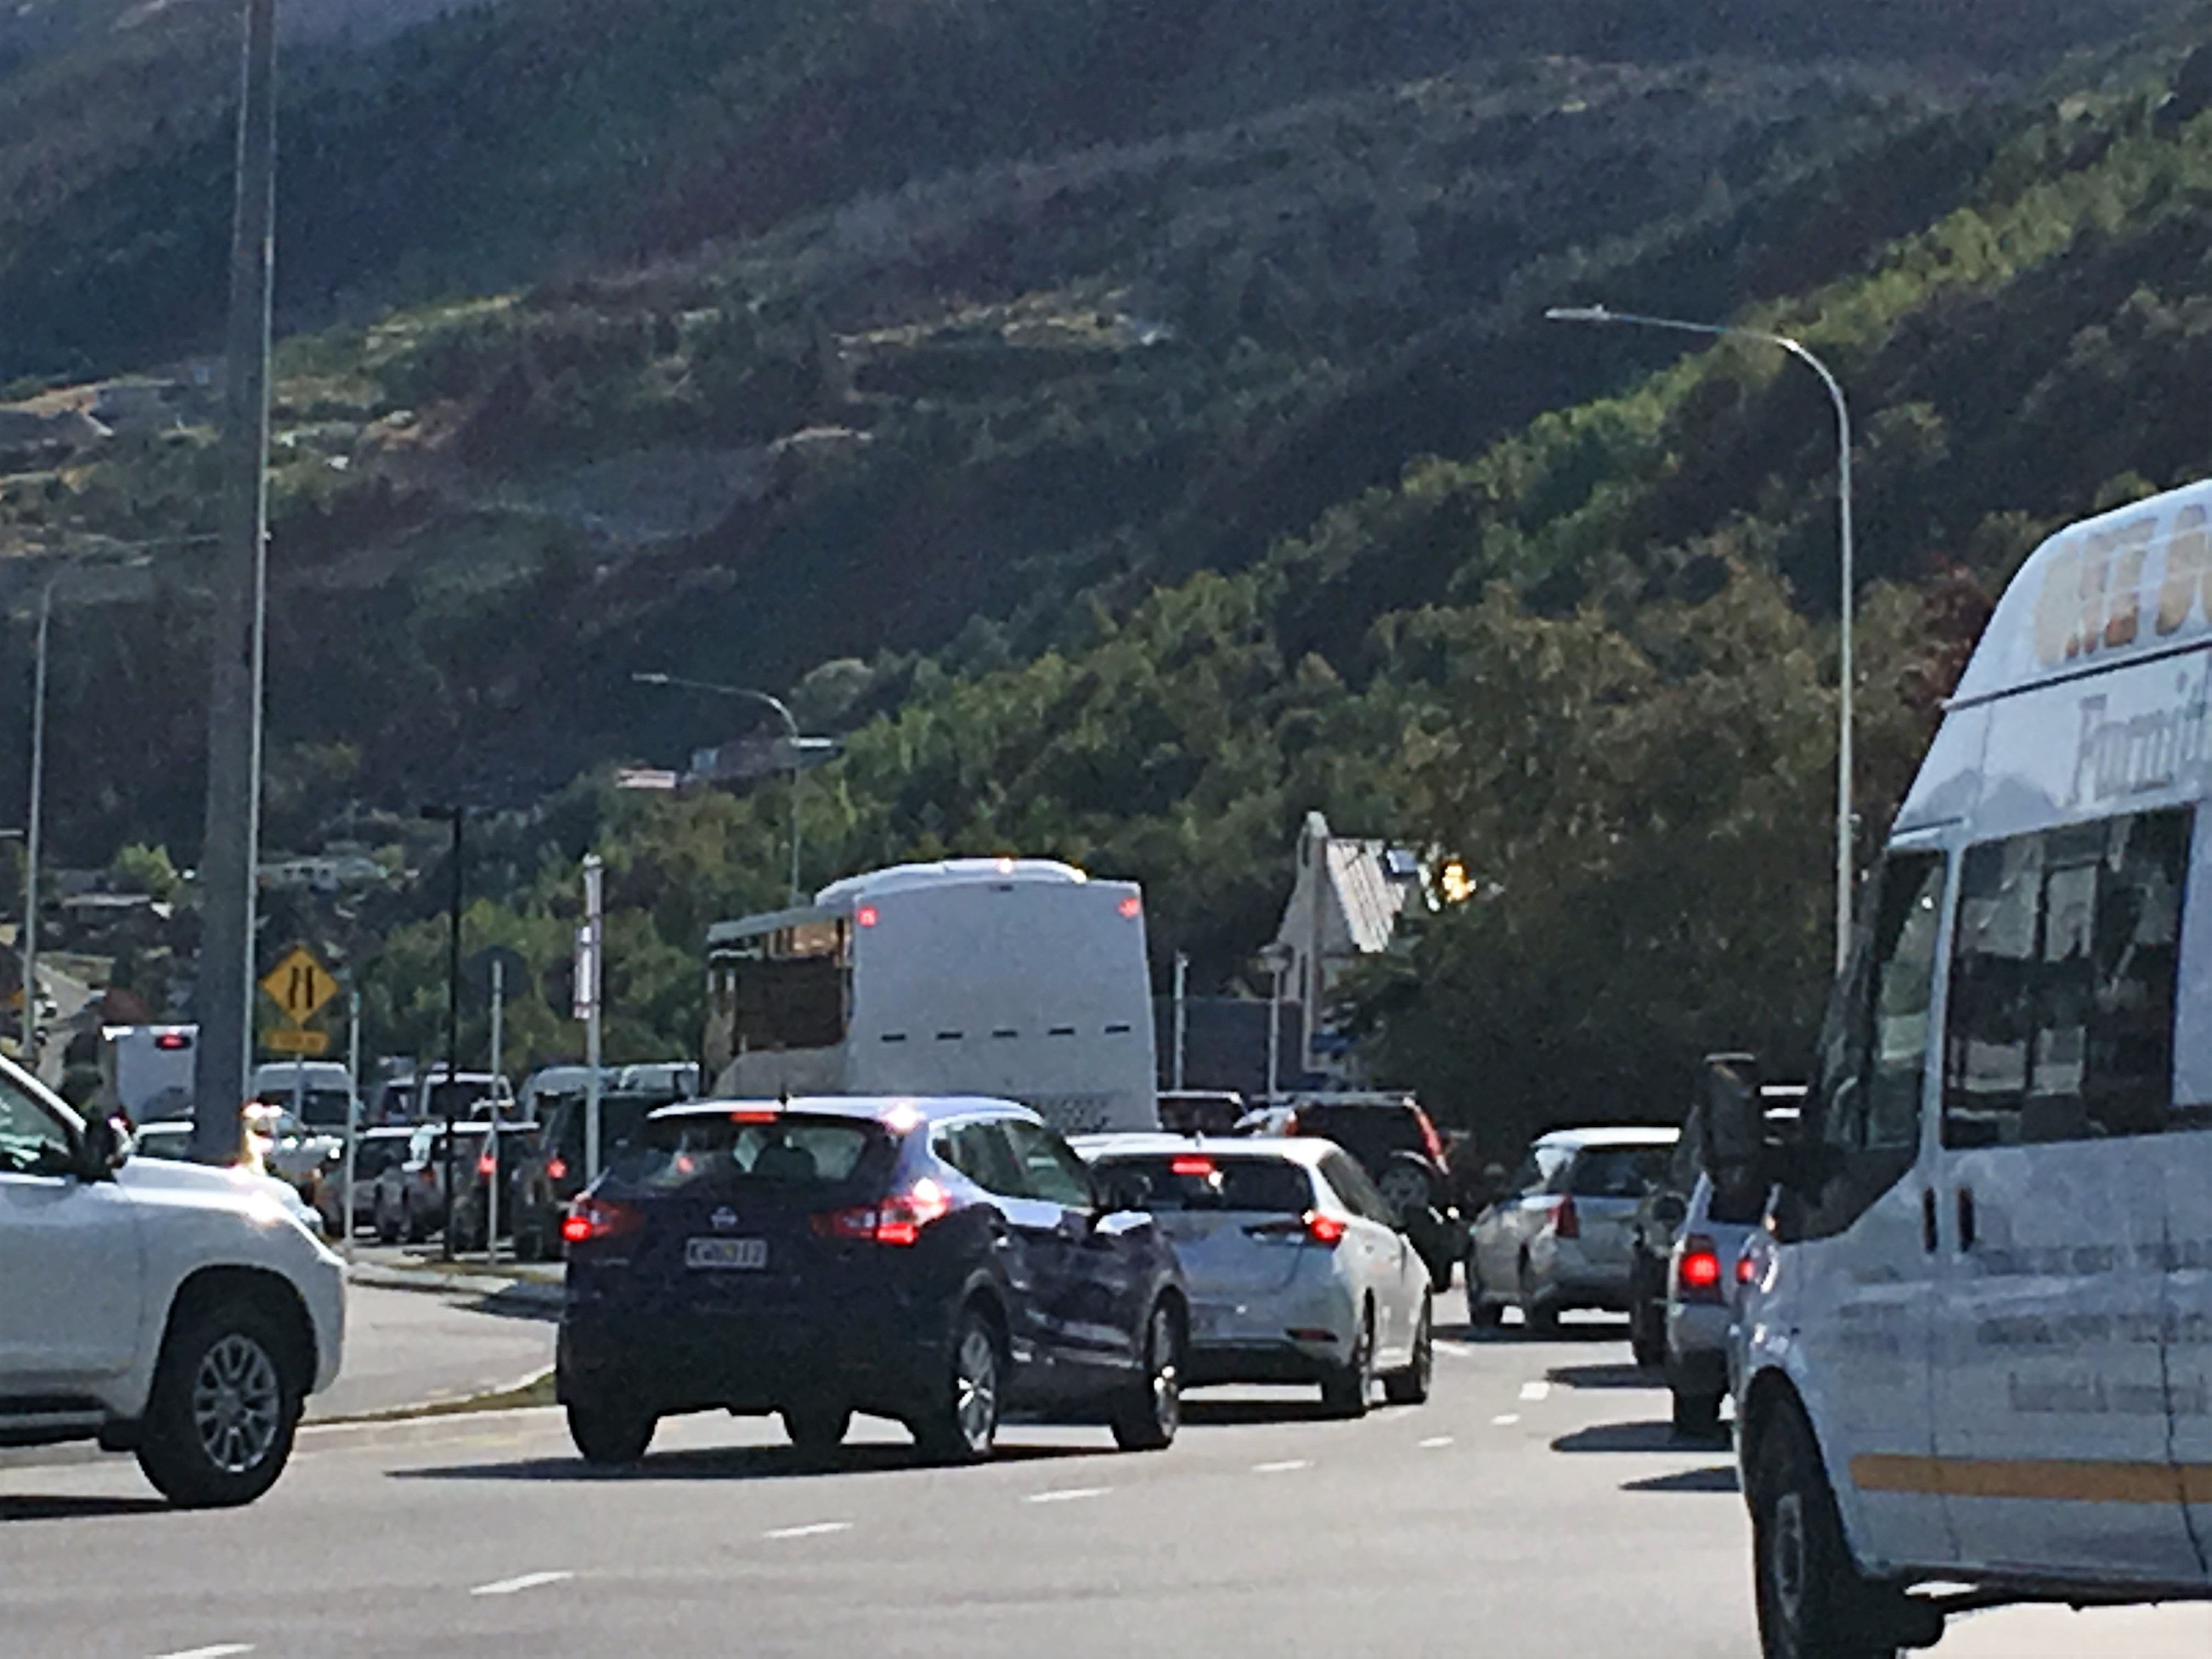 Traffic_at_a_Queenstown_roundabout_by_Alexa_Forbes